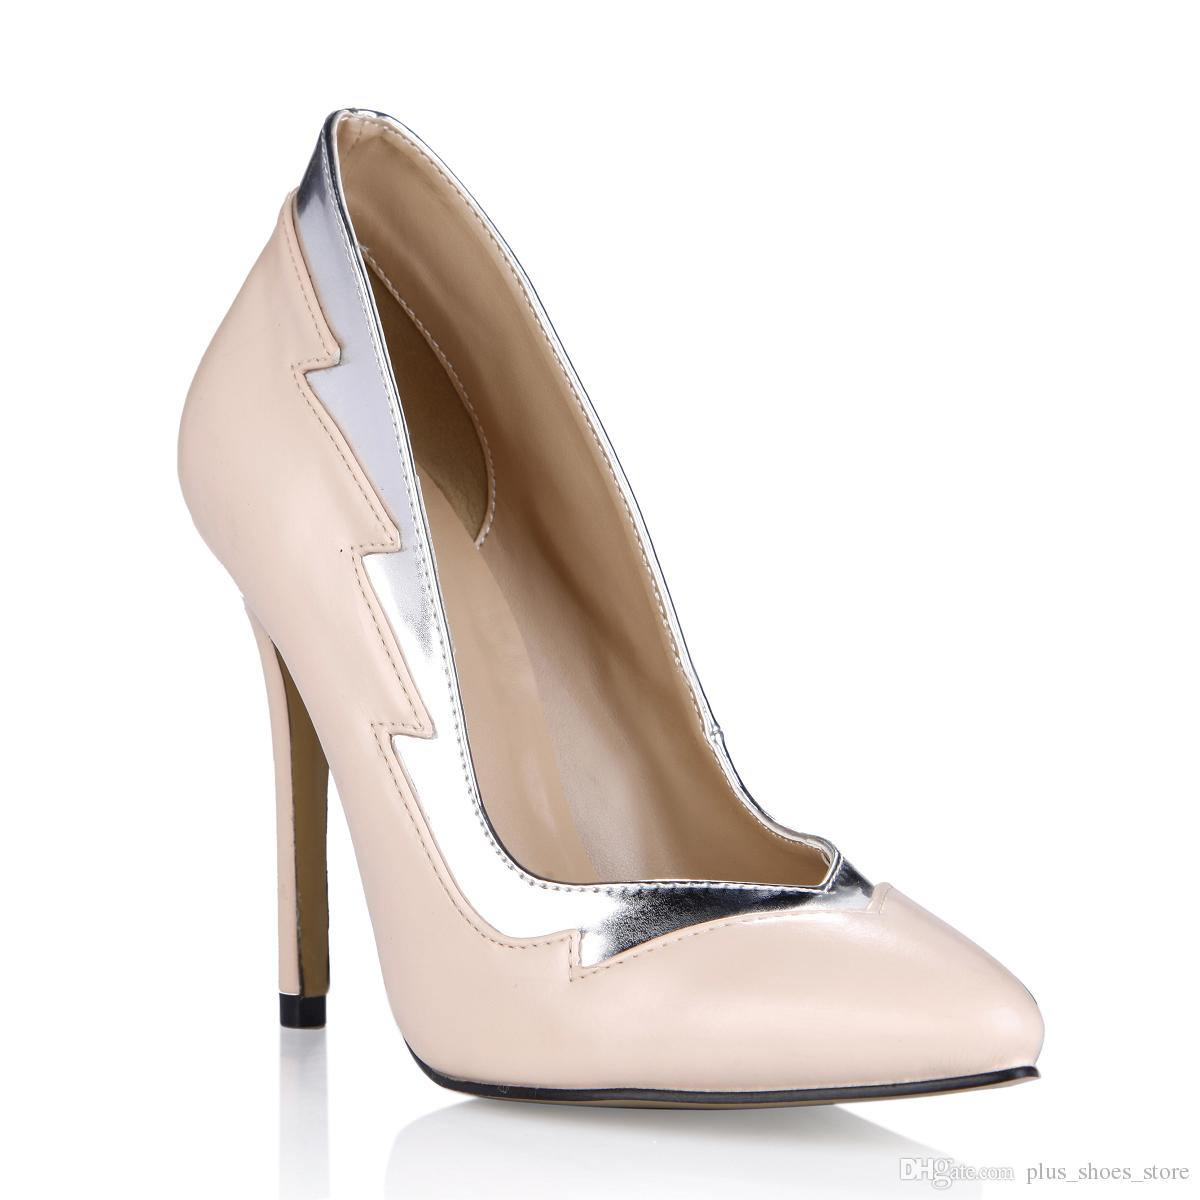 Real Blush Pink Dress Shoes Pumps Women 2017 Slip On Pointed Toe Sexy Shoes  Bridal Wedding Shoes Summer Style Pump Hot Sale Fashion Shoes Cheap Shoes  For ... 0462272e272b